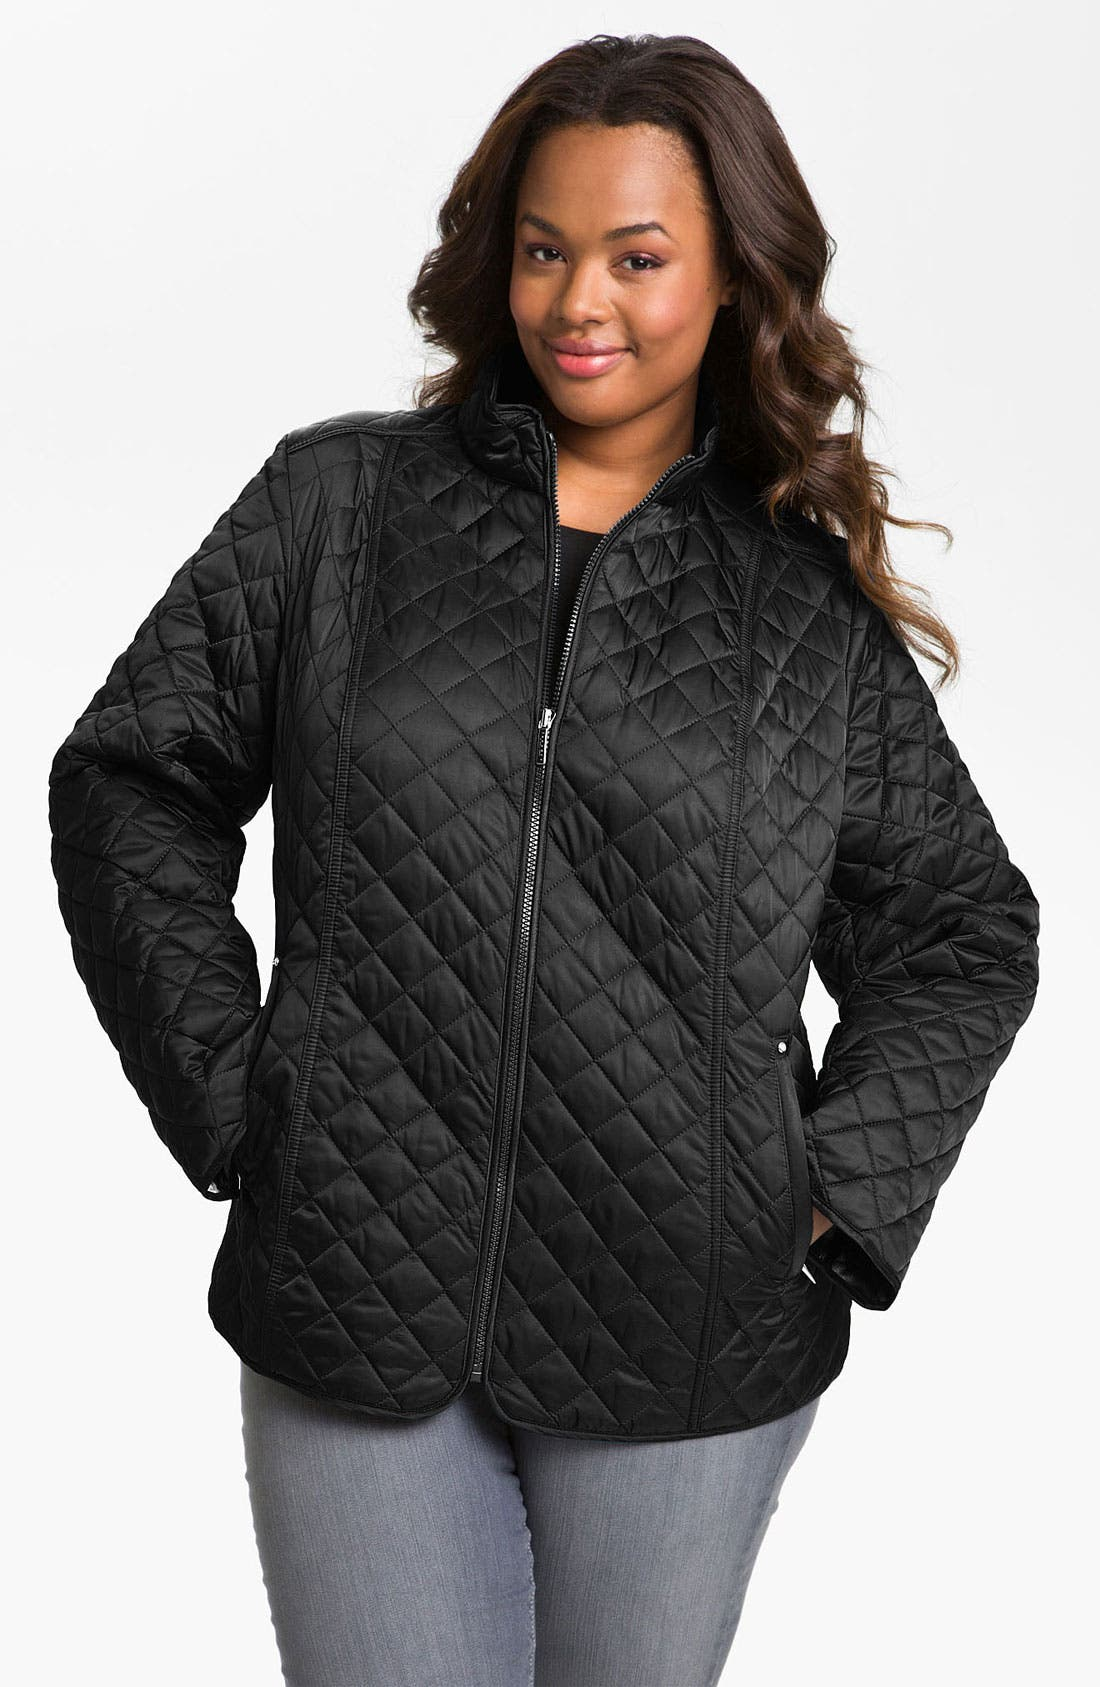 Alternate Image 1 Selected - Laundry by Shelli Segal Quilted Zip Jacket (Plus)